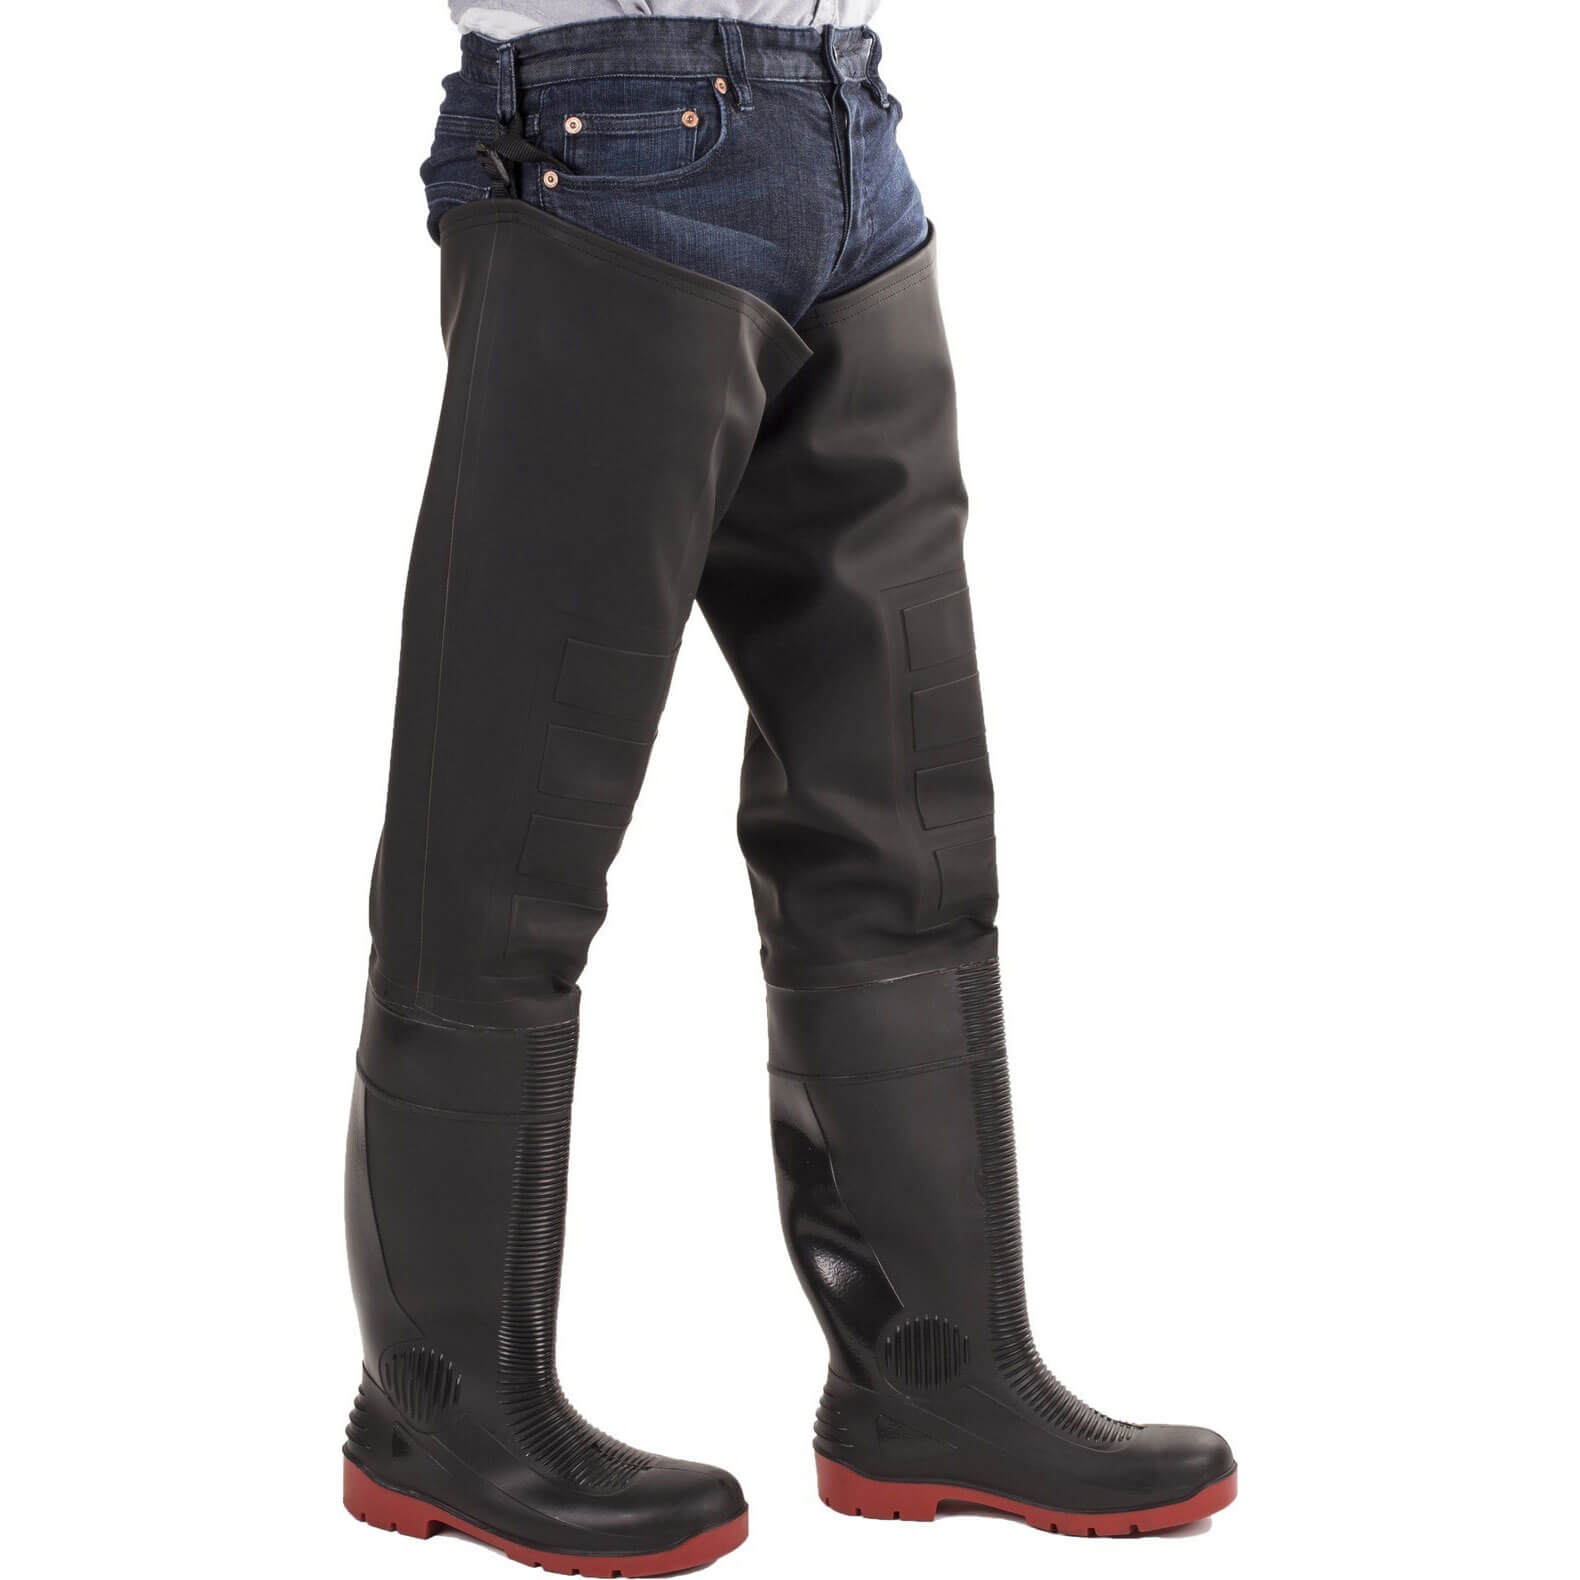 CHEAP Amblers Safety Rhone Thigh Safety Wader Black / Red Size 11 – Men's Footwear